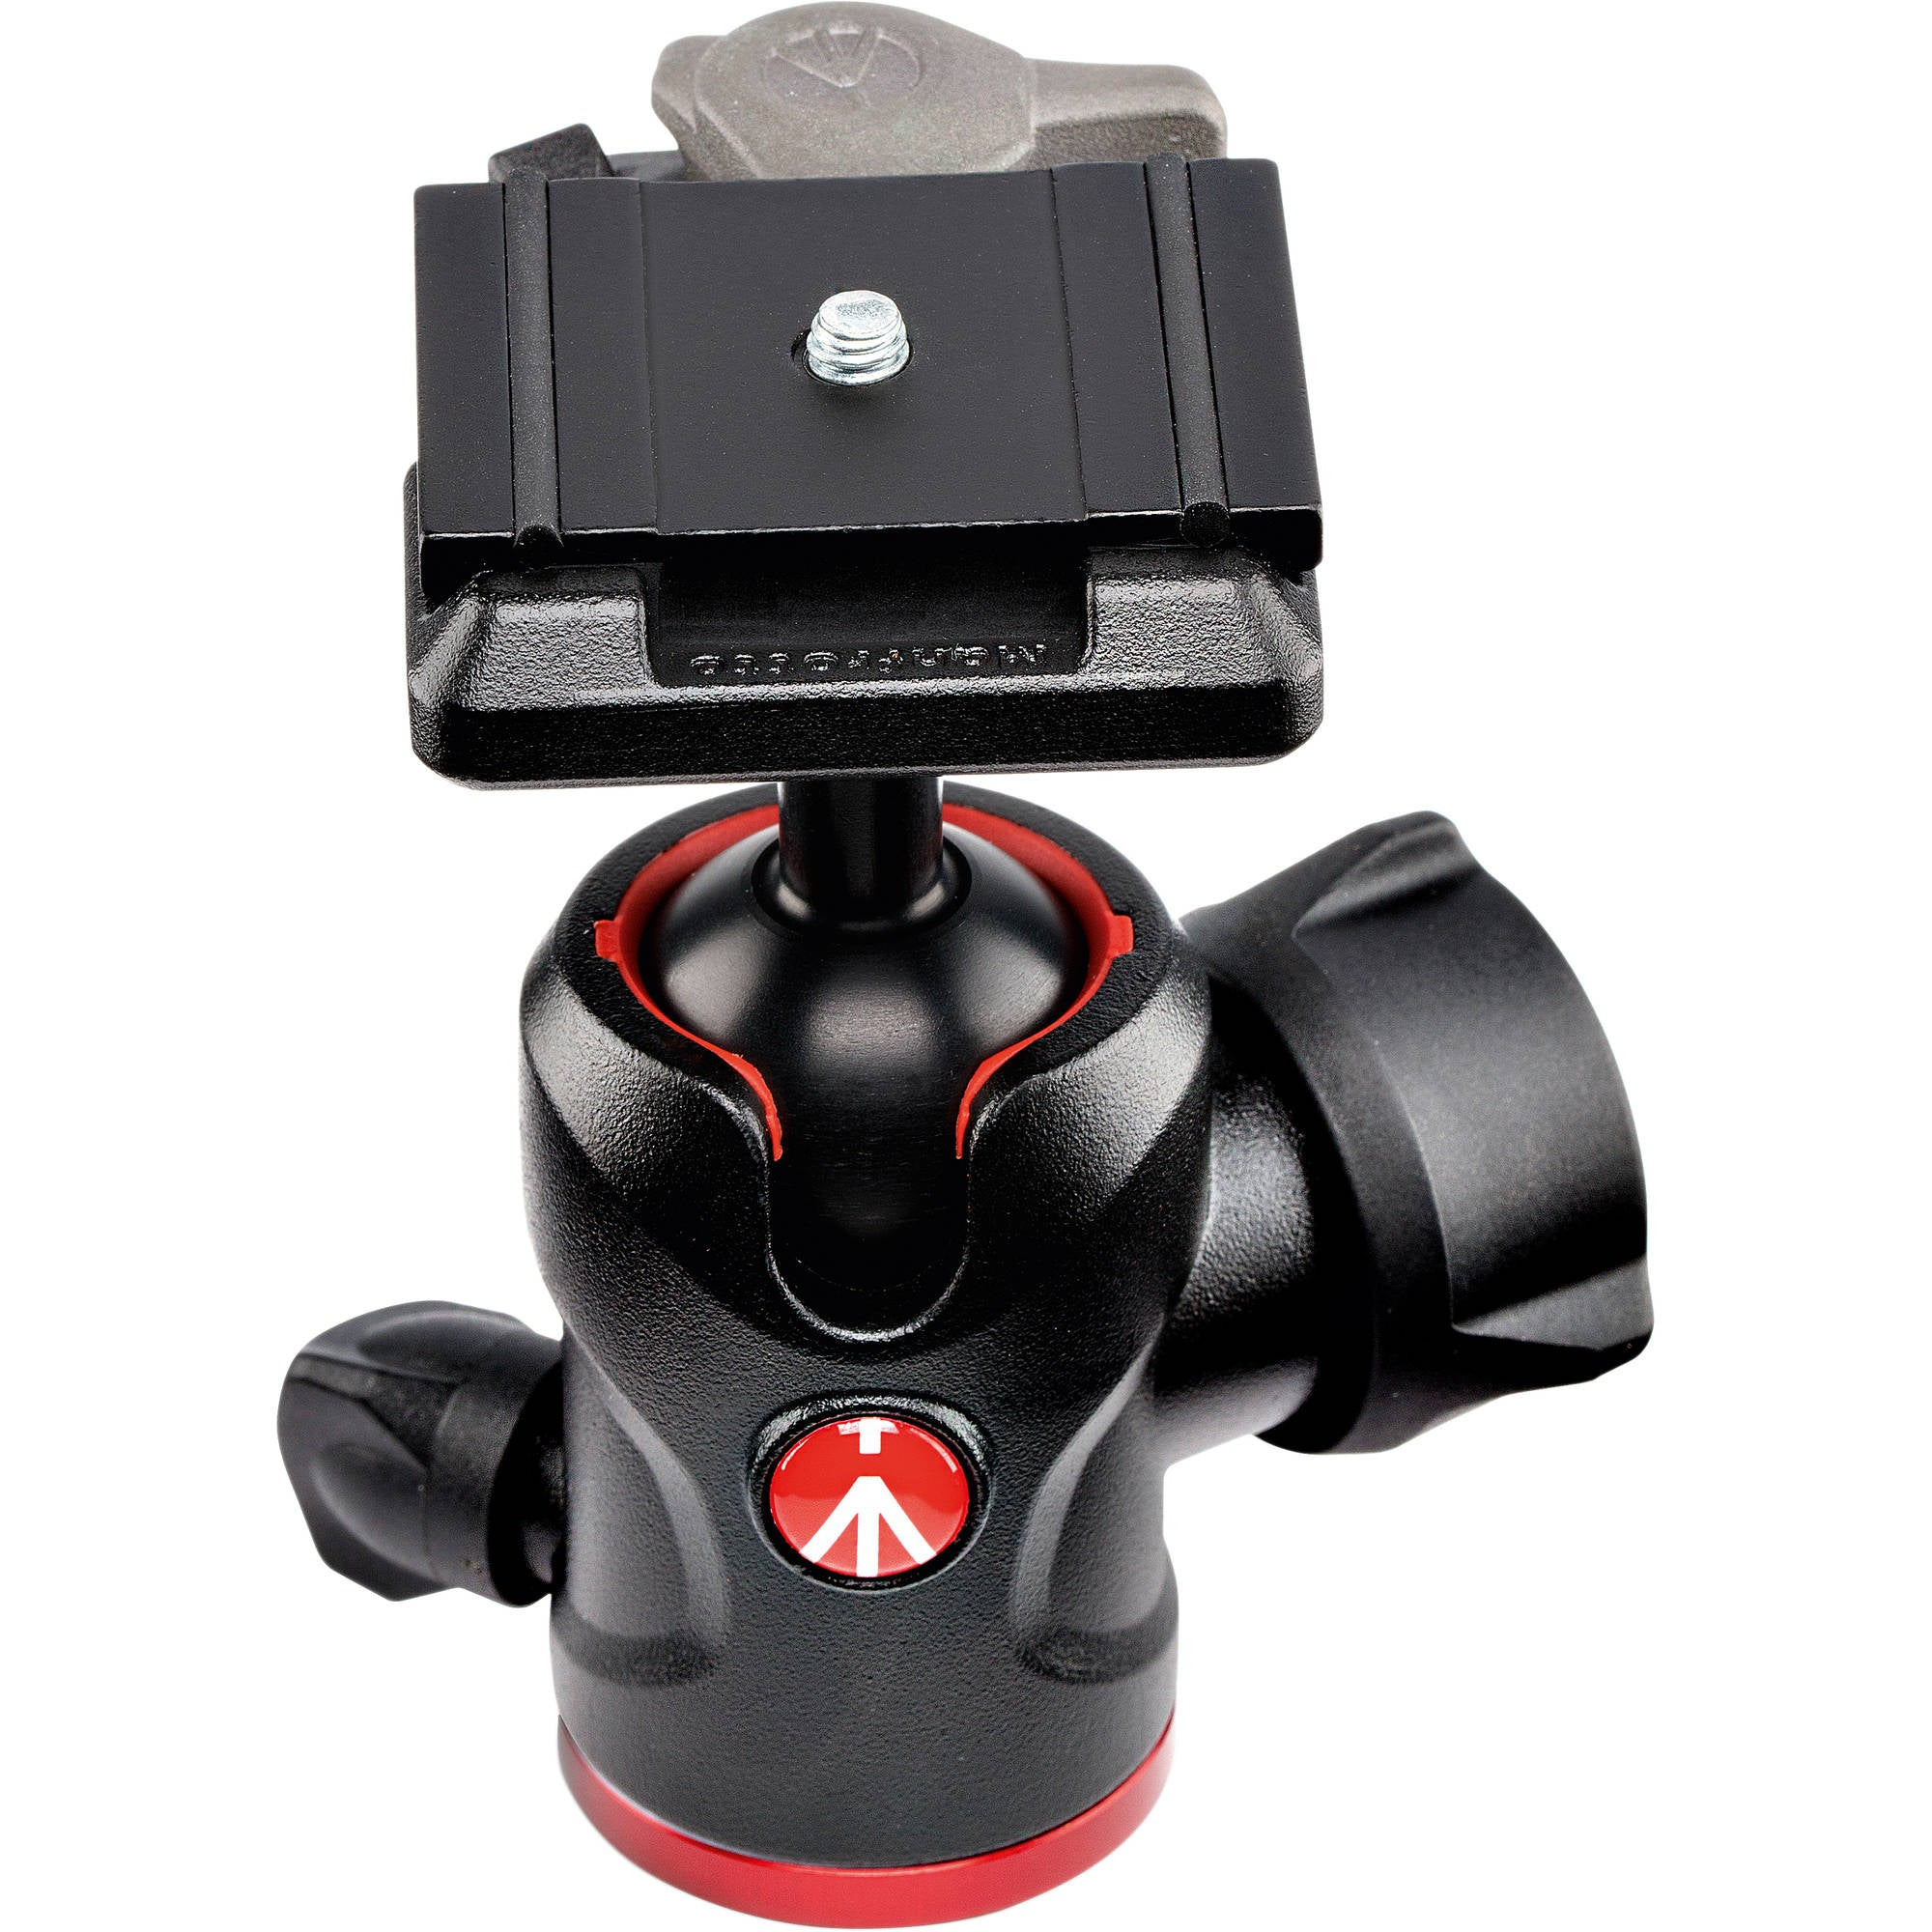 Manfrotto 494 Center Ball Head with 200PL-PRO Quick Release Plate